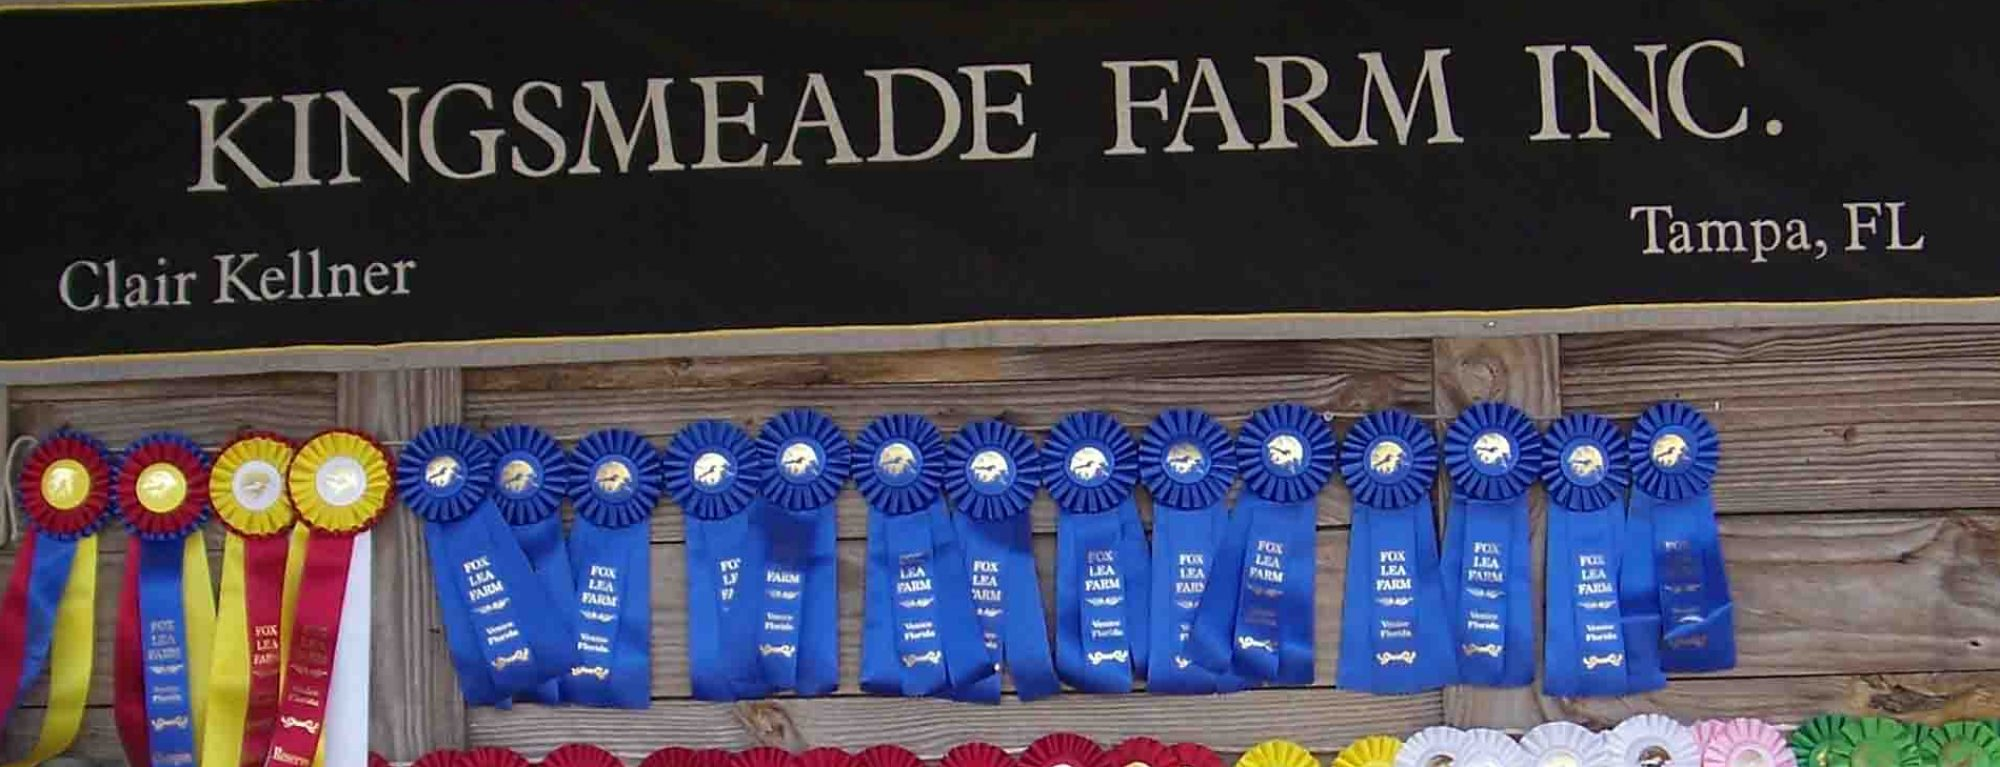 Kingsmeade Farm Inc